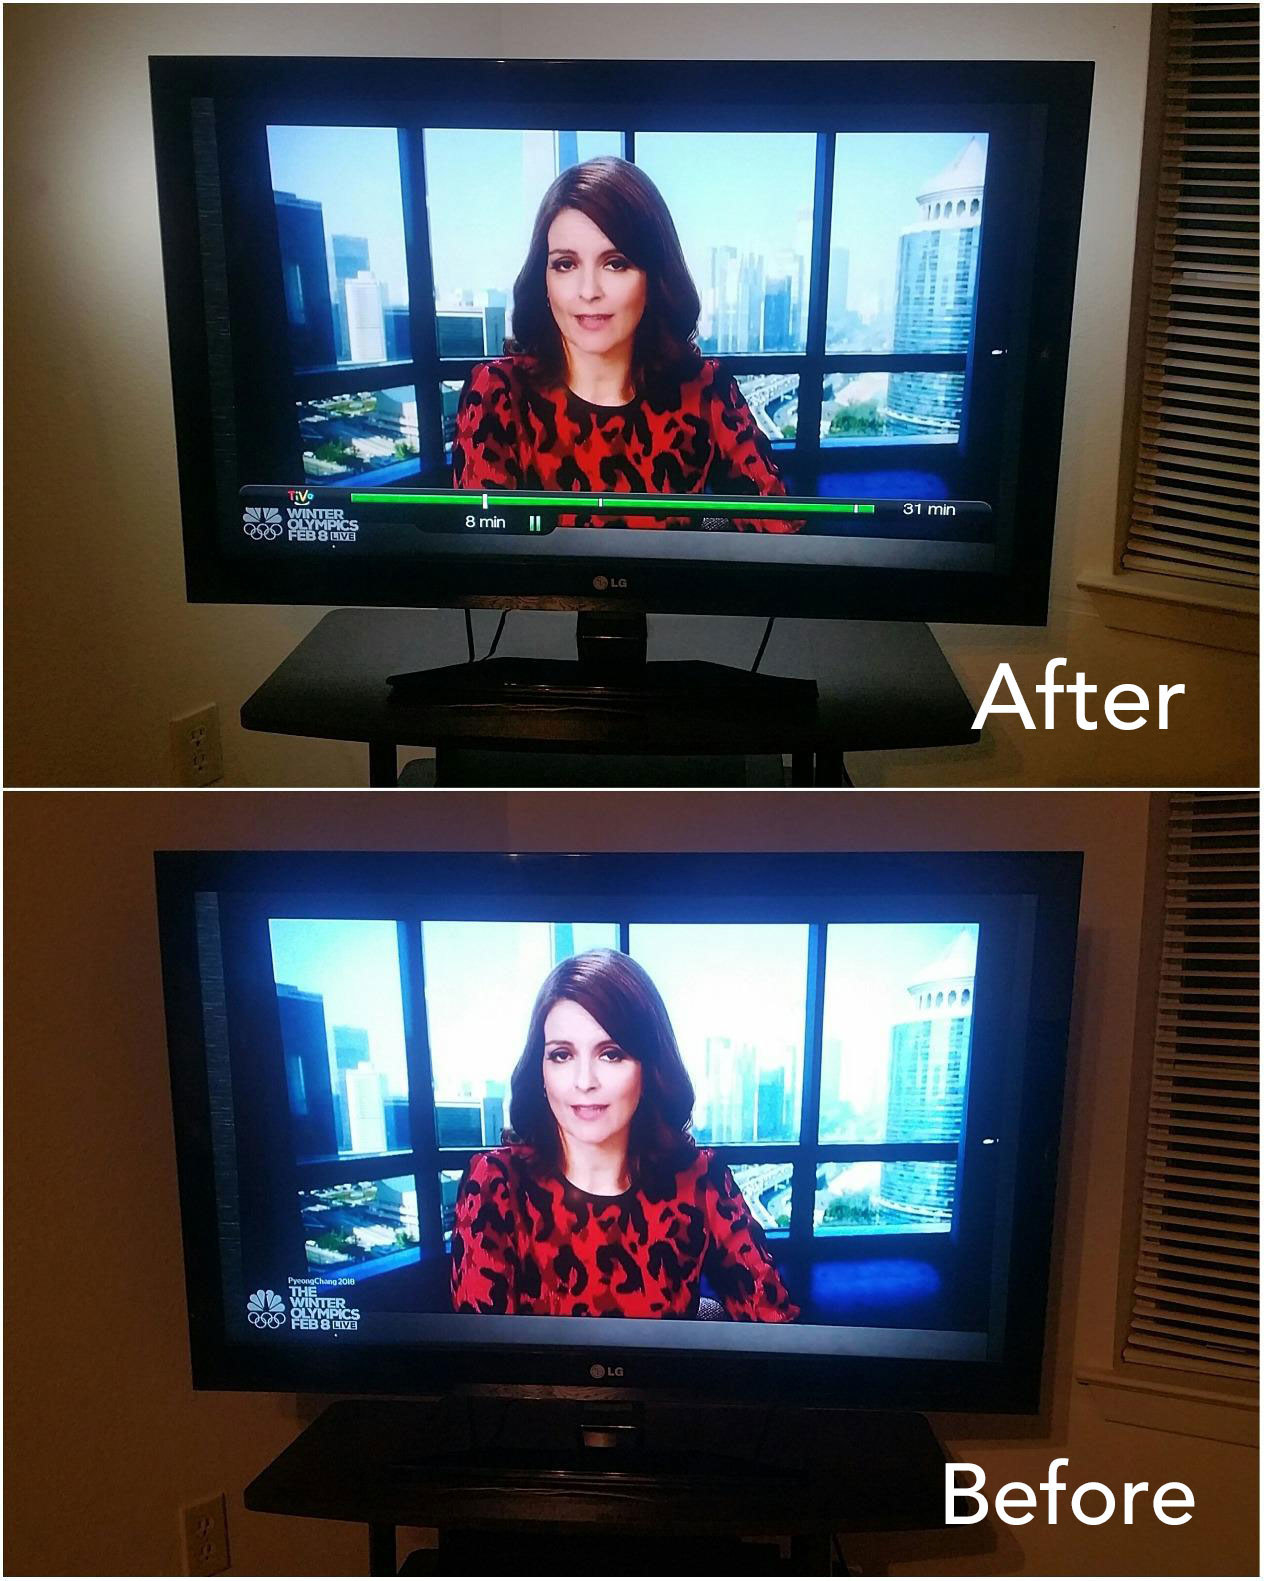 A reviewer's before/after: the TV without backlighting looking harsh with less defined colors, the TV with backlighting is easier to look at with more vibrant colors